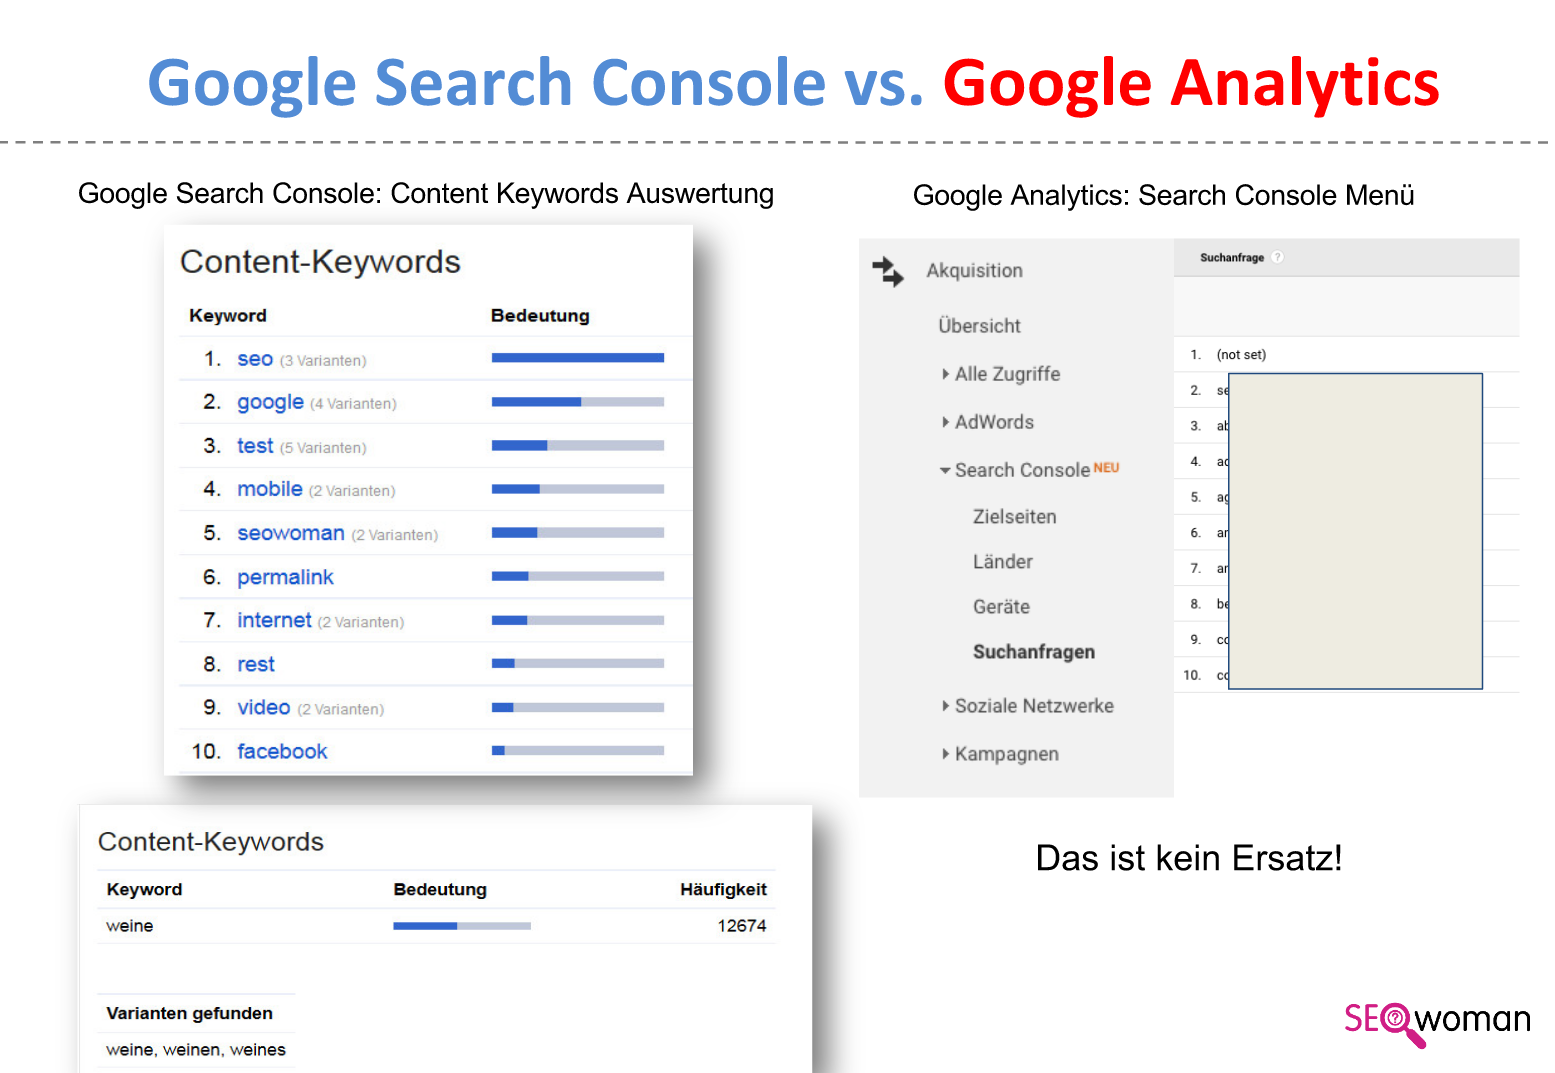 Content Keywords: Google Search Console vs Google Analytics